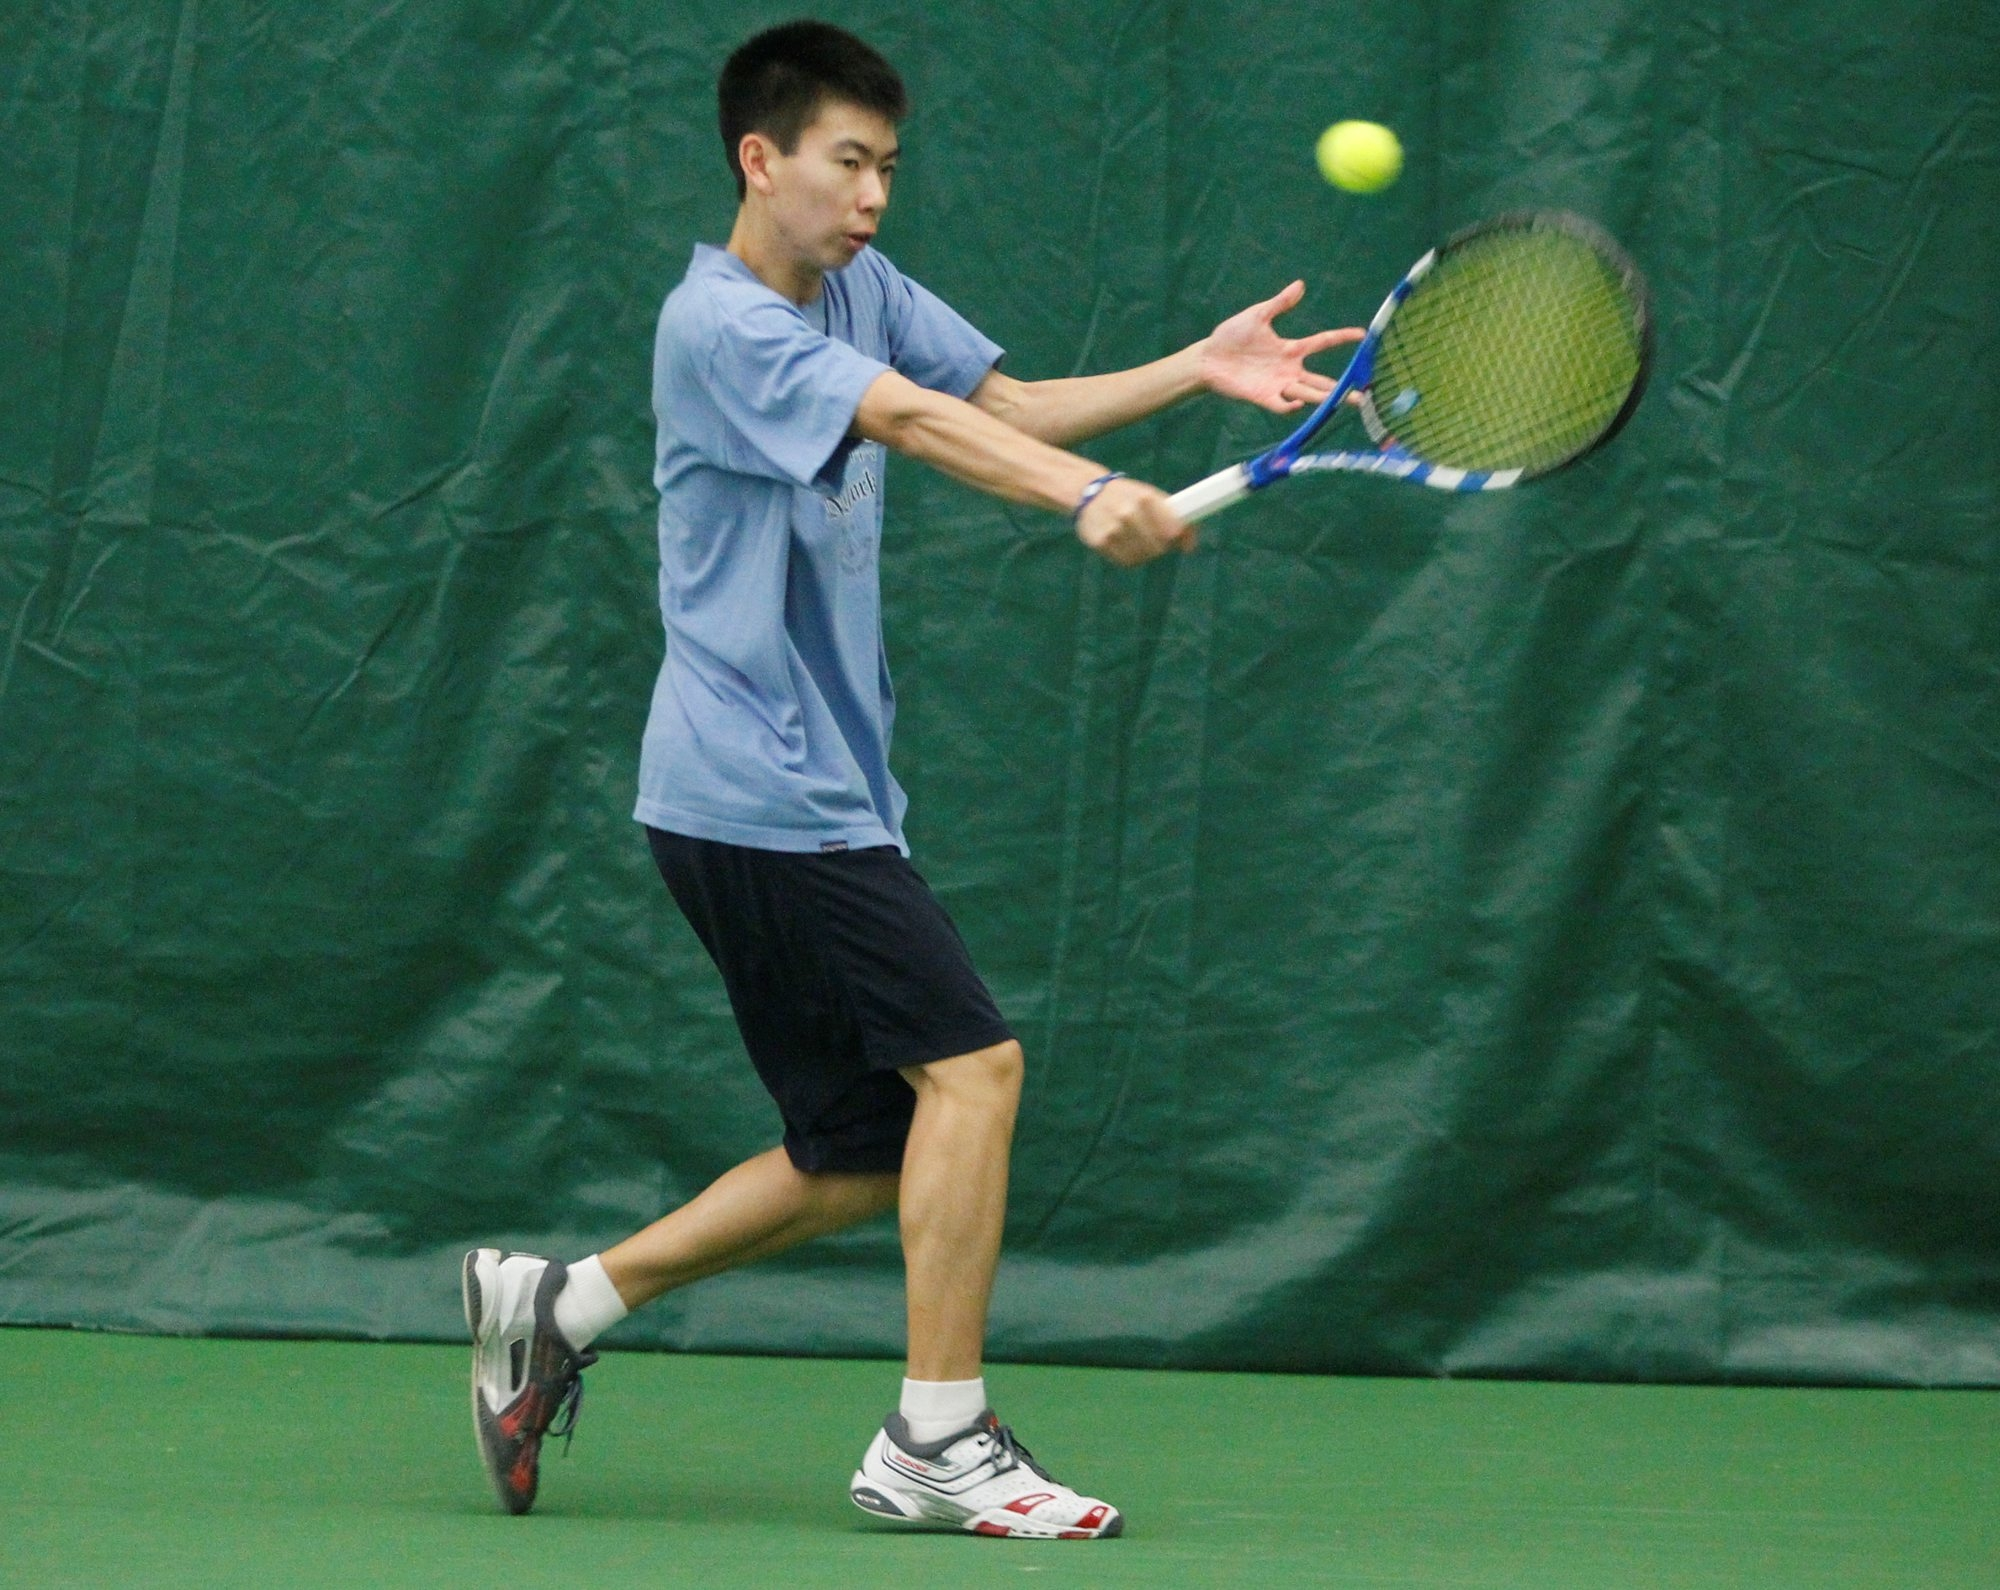 Winston Lin is one of the fine young players who will be competing in the USTA Men's Future Pro Circuit event in Williamsville.